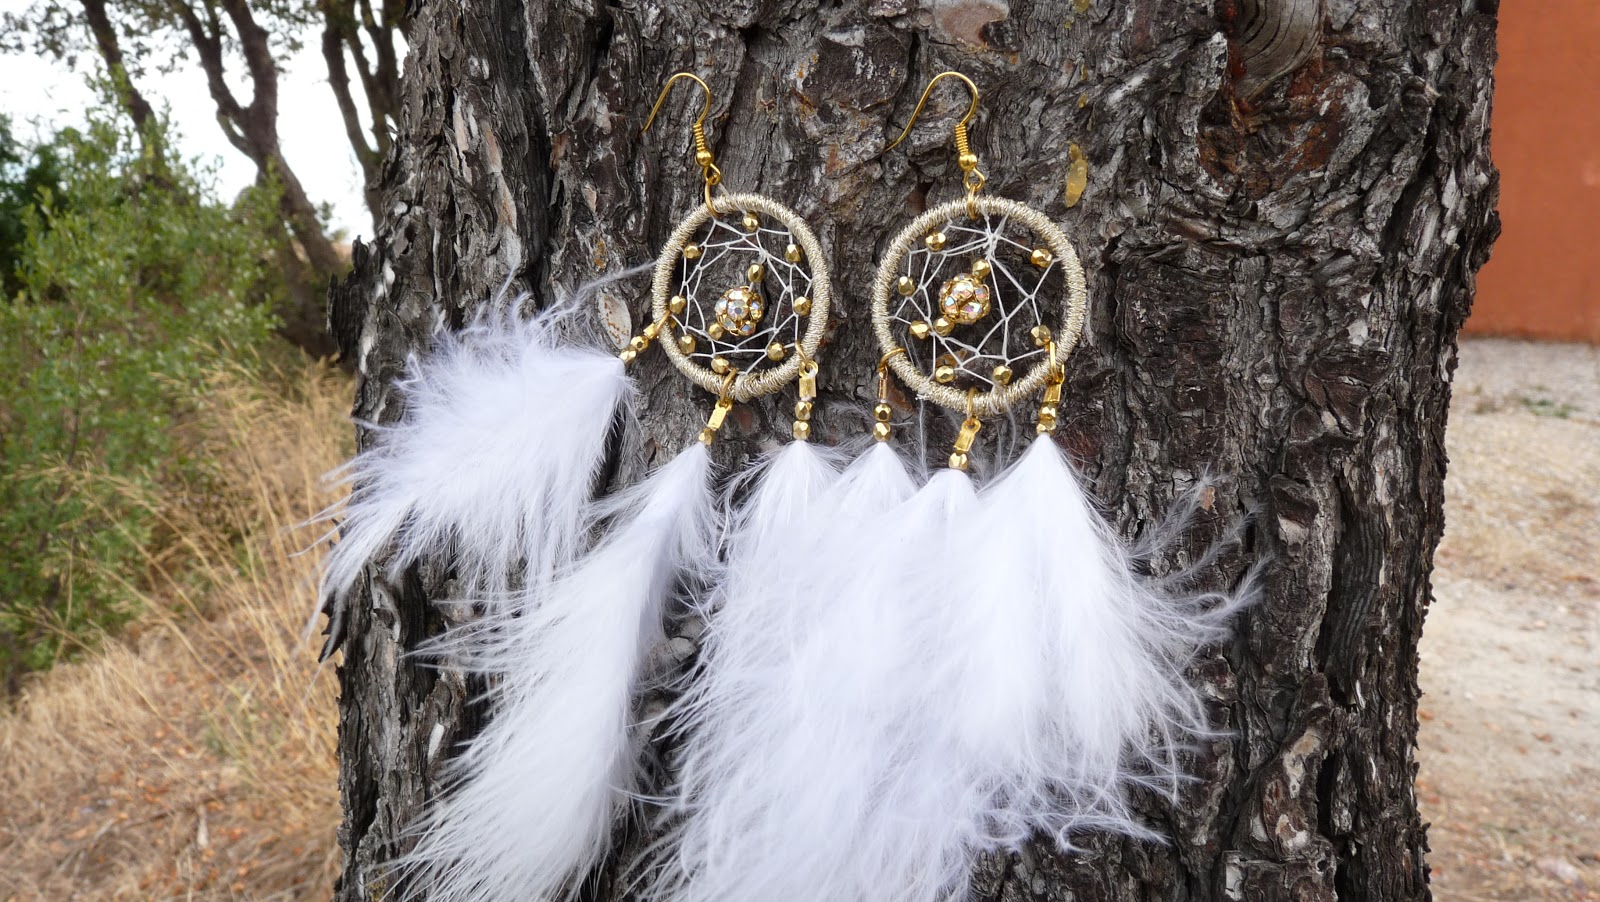 tutoriel d i y comment faire des boucles d 39 oreilles attrapes r ves dreamcatcher earrings. Black Bedroom Furniture Sets. Home Design Ideas